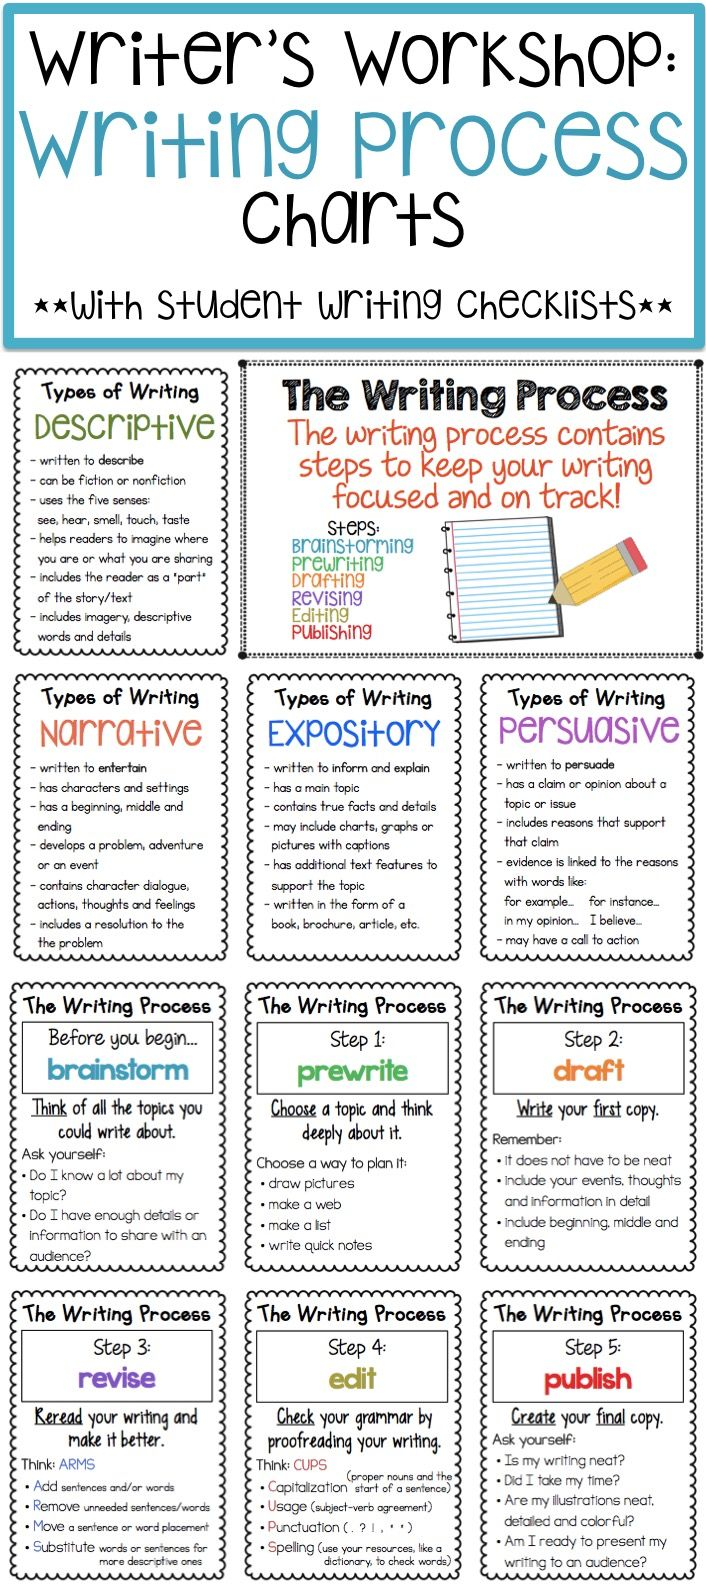 007 Writing Process Charts and Checklists Year 5 Classroom